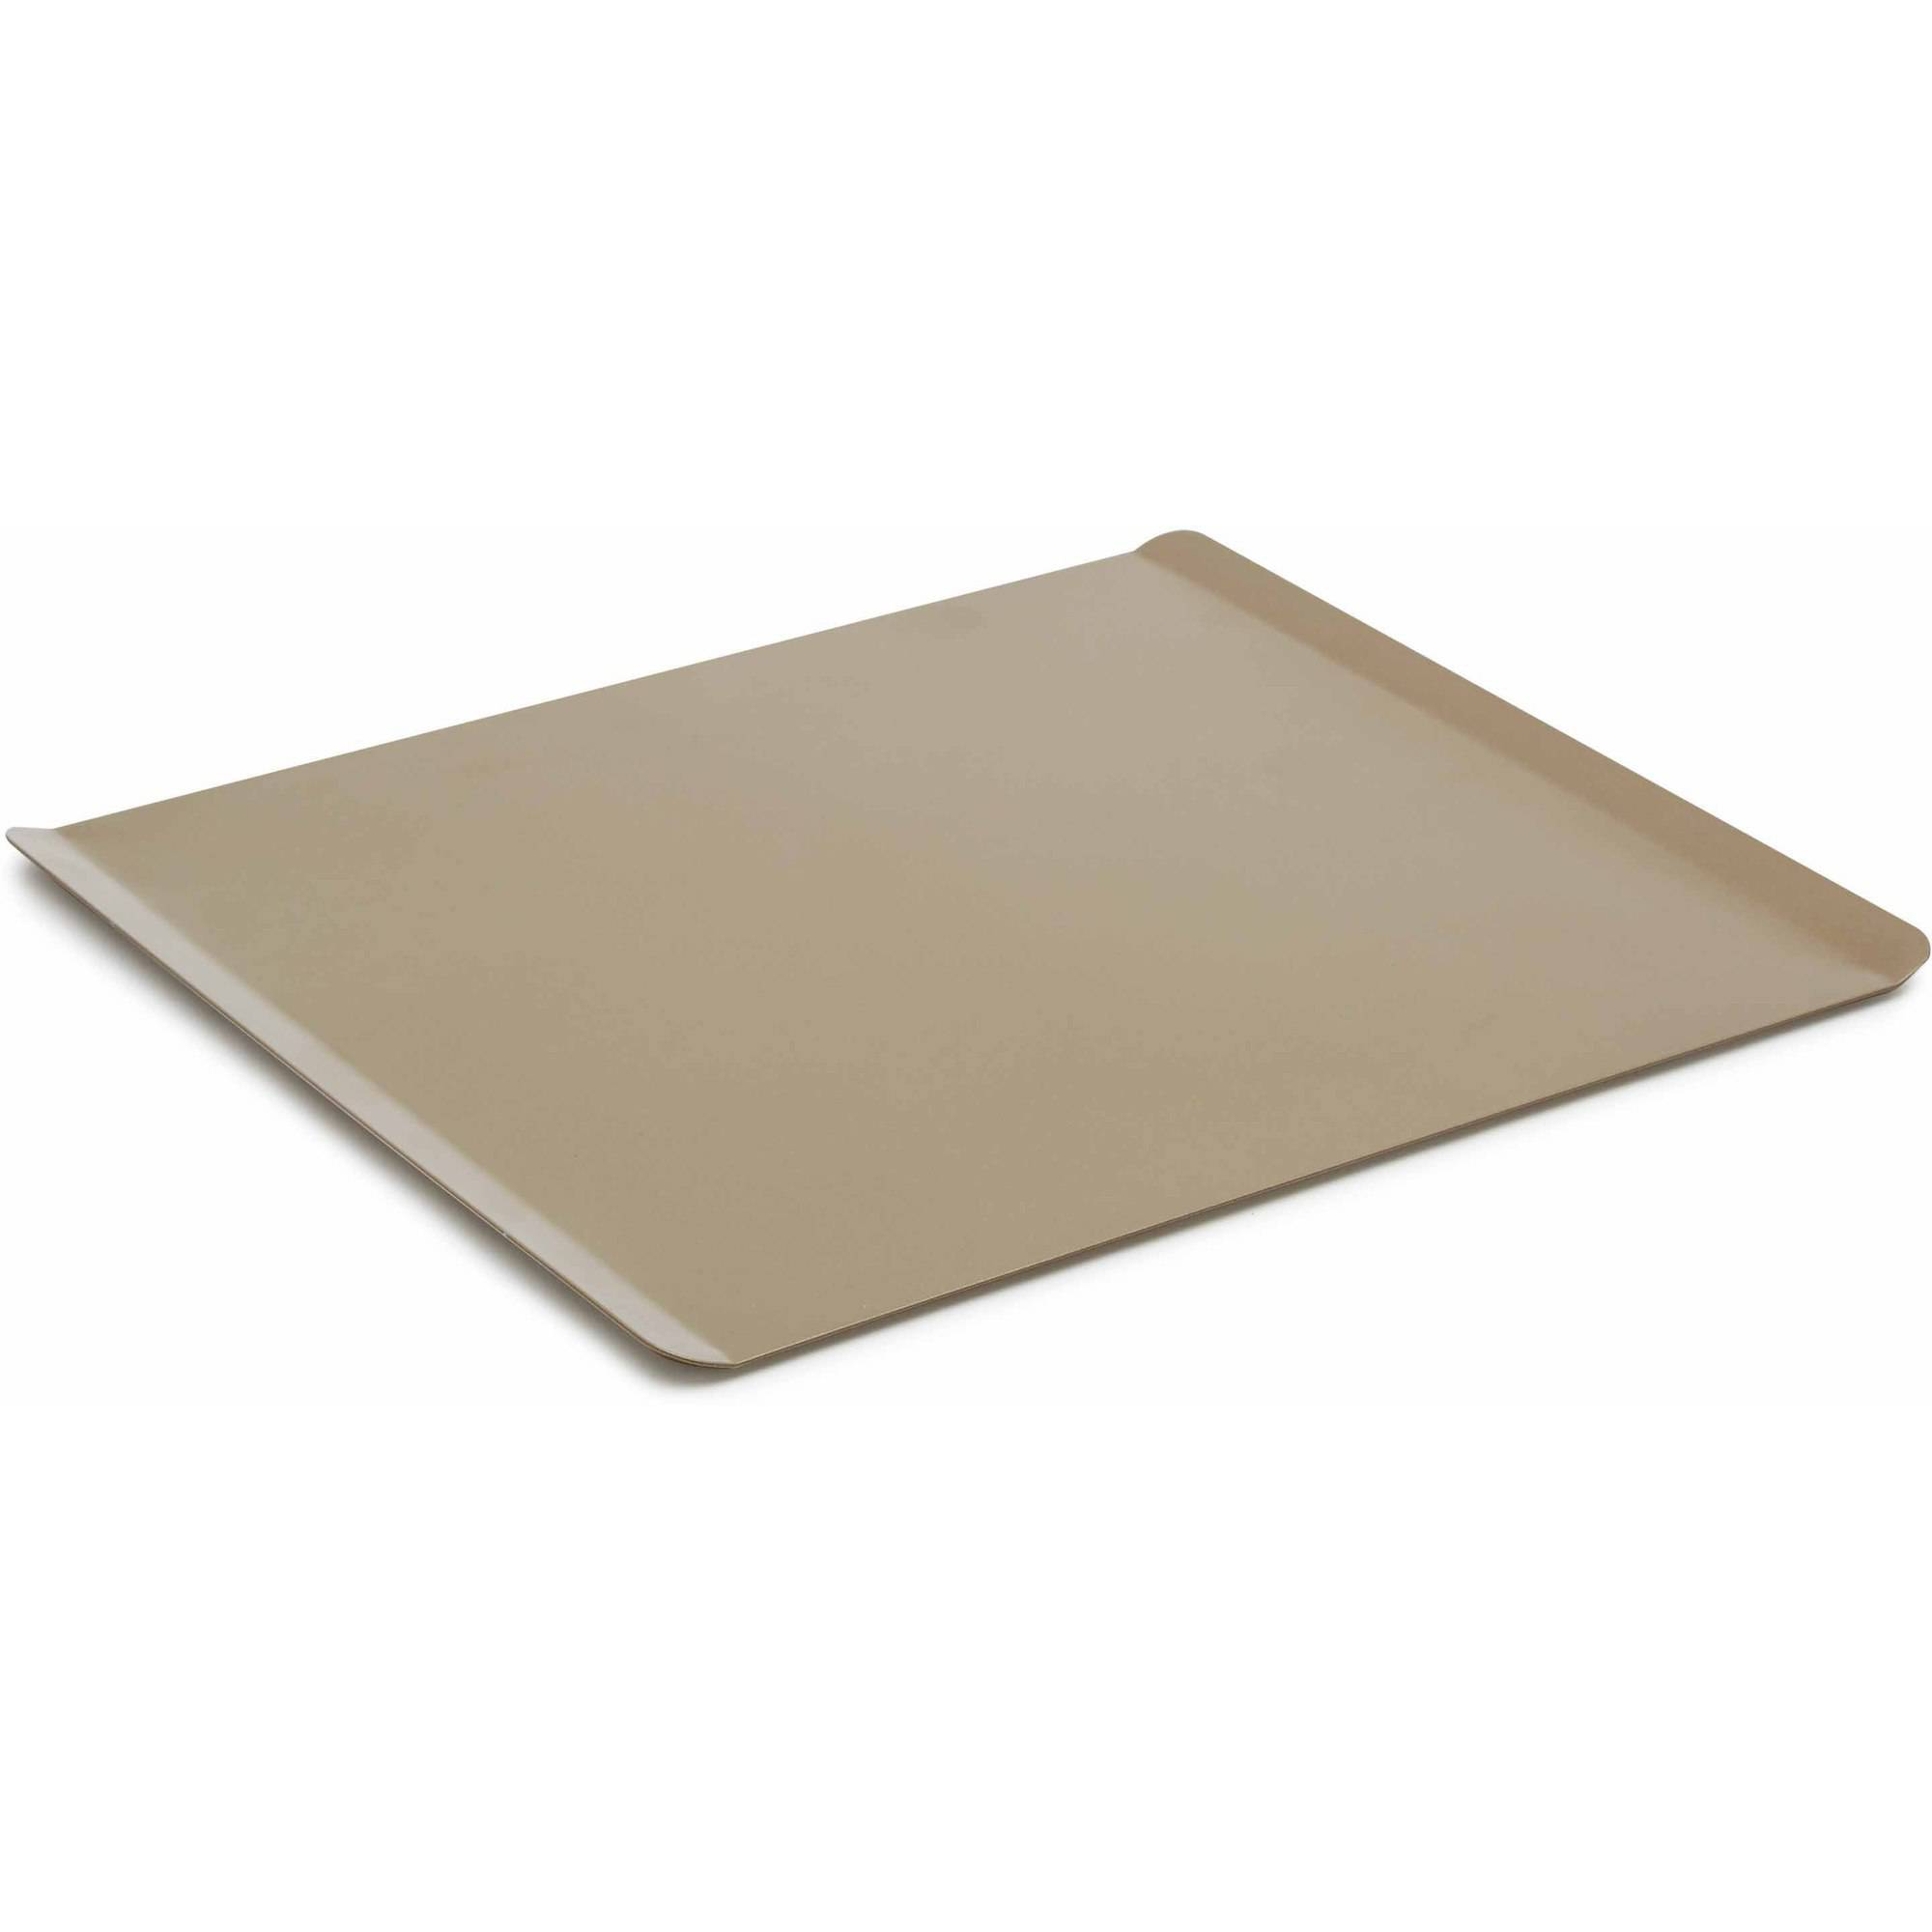 """Cooking with Calphalon Nonstick Bakeware 14"""" x 16"""" Insulated Cookie Sheet"""